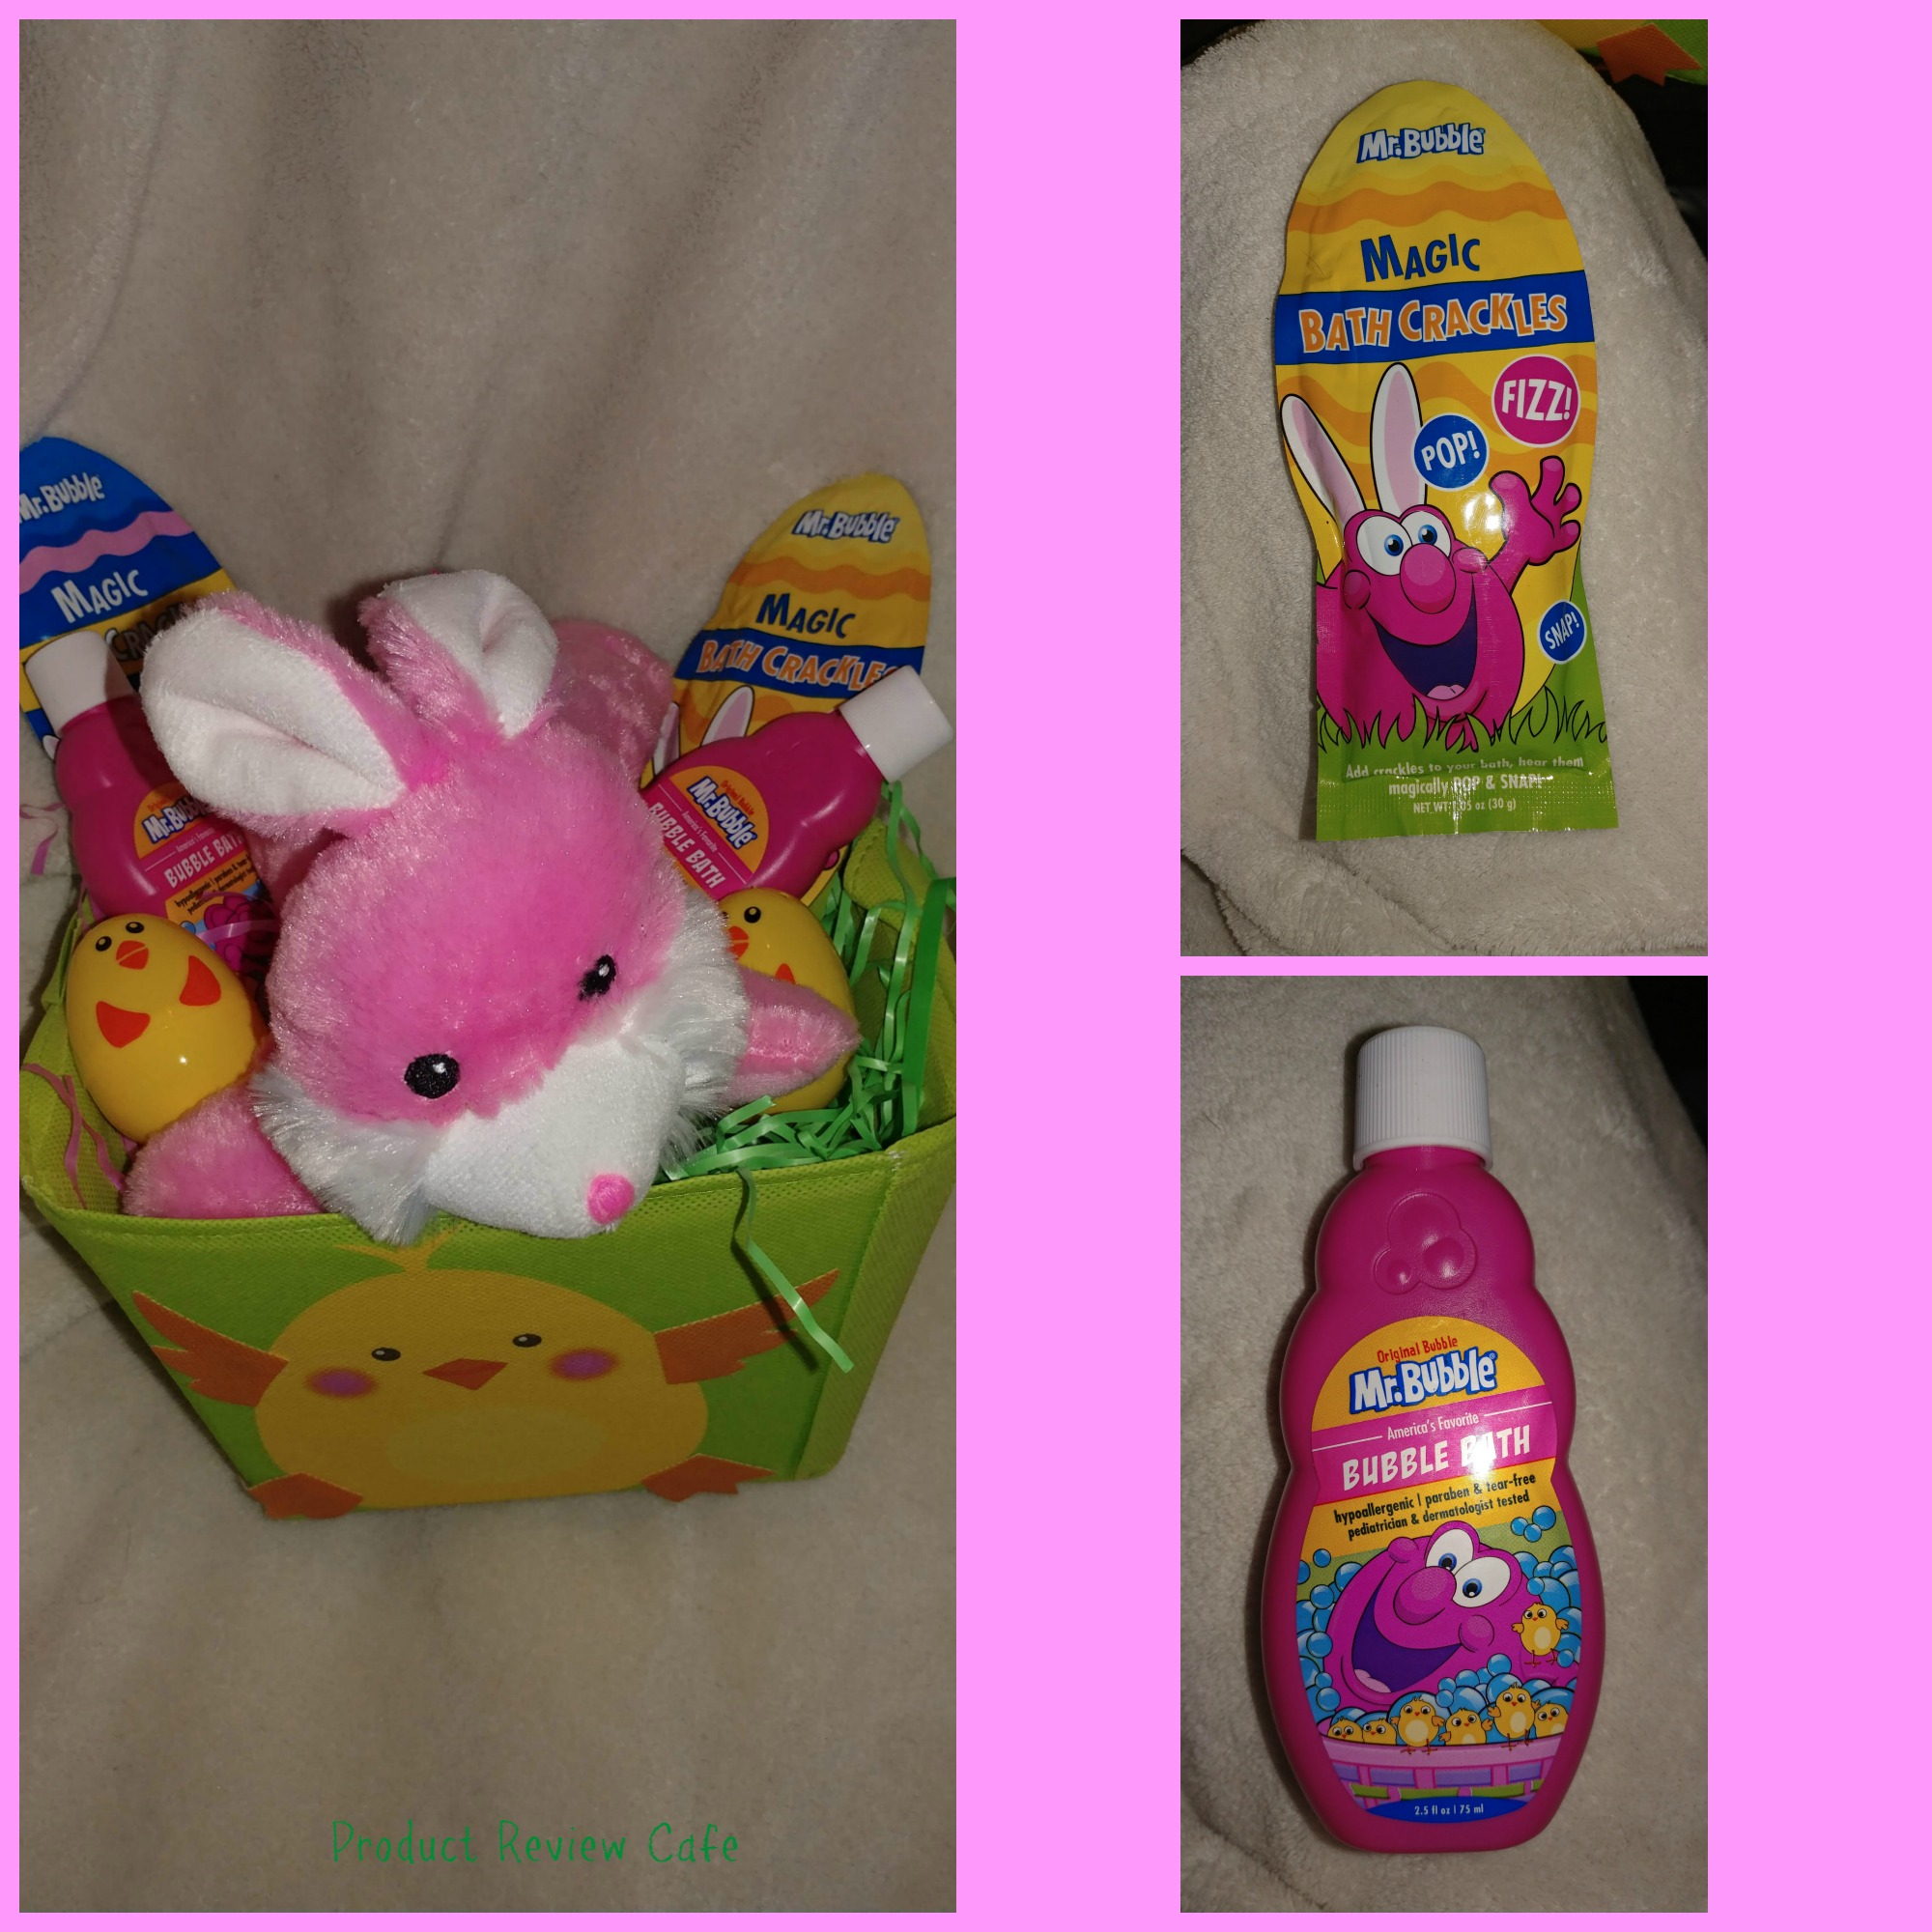 Affordable Easter Basket Ideas from Mr. Bubble